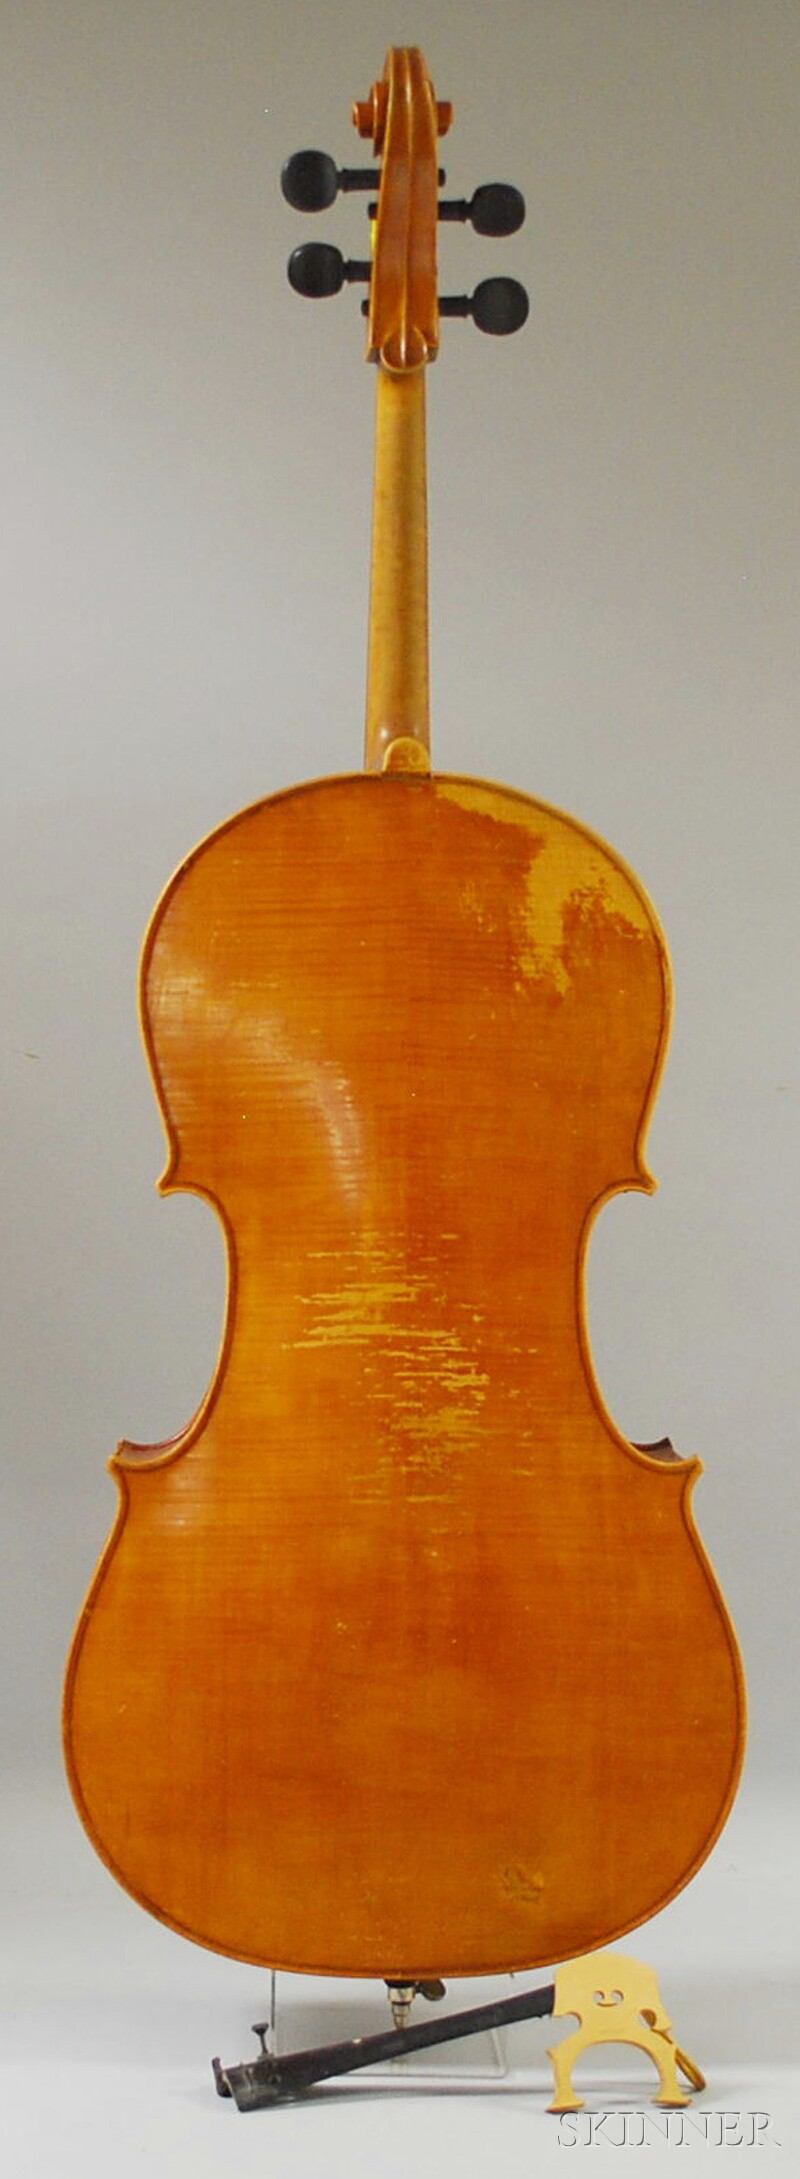 German Violoncello, c. 1905, for Lyon & Healy